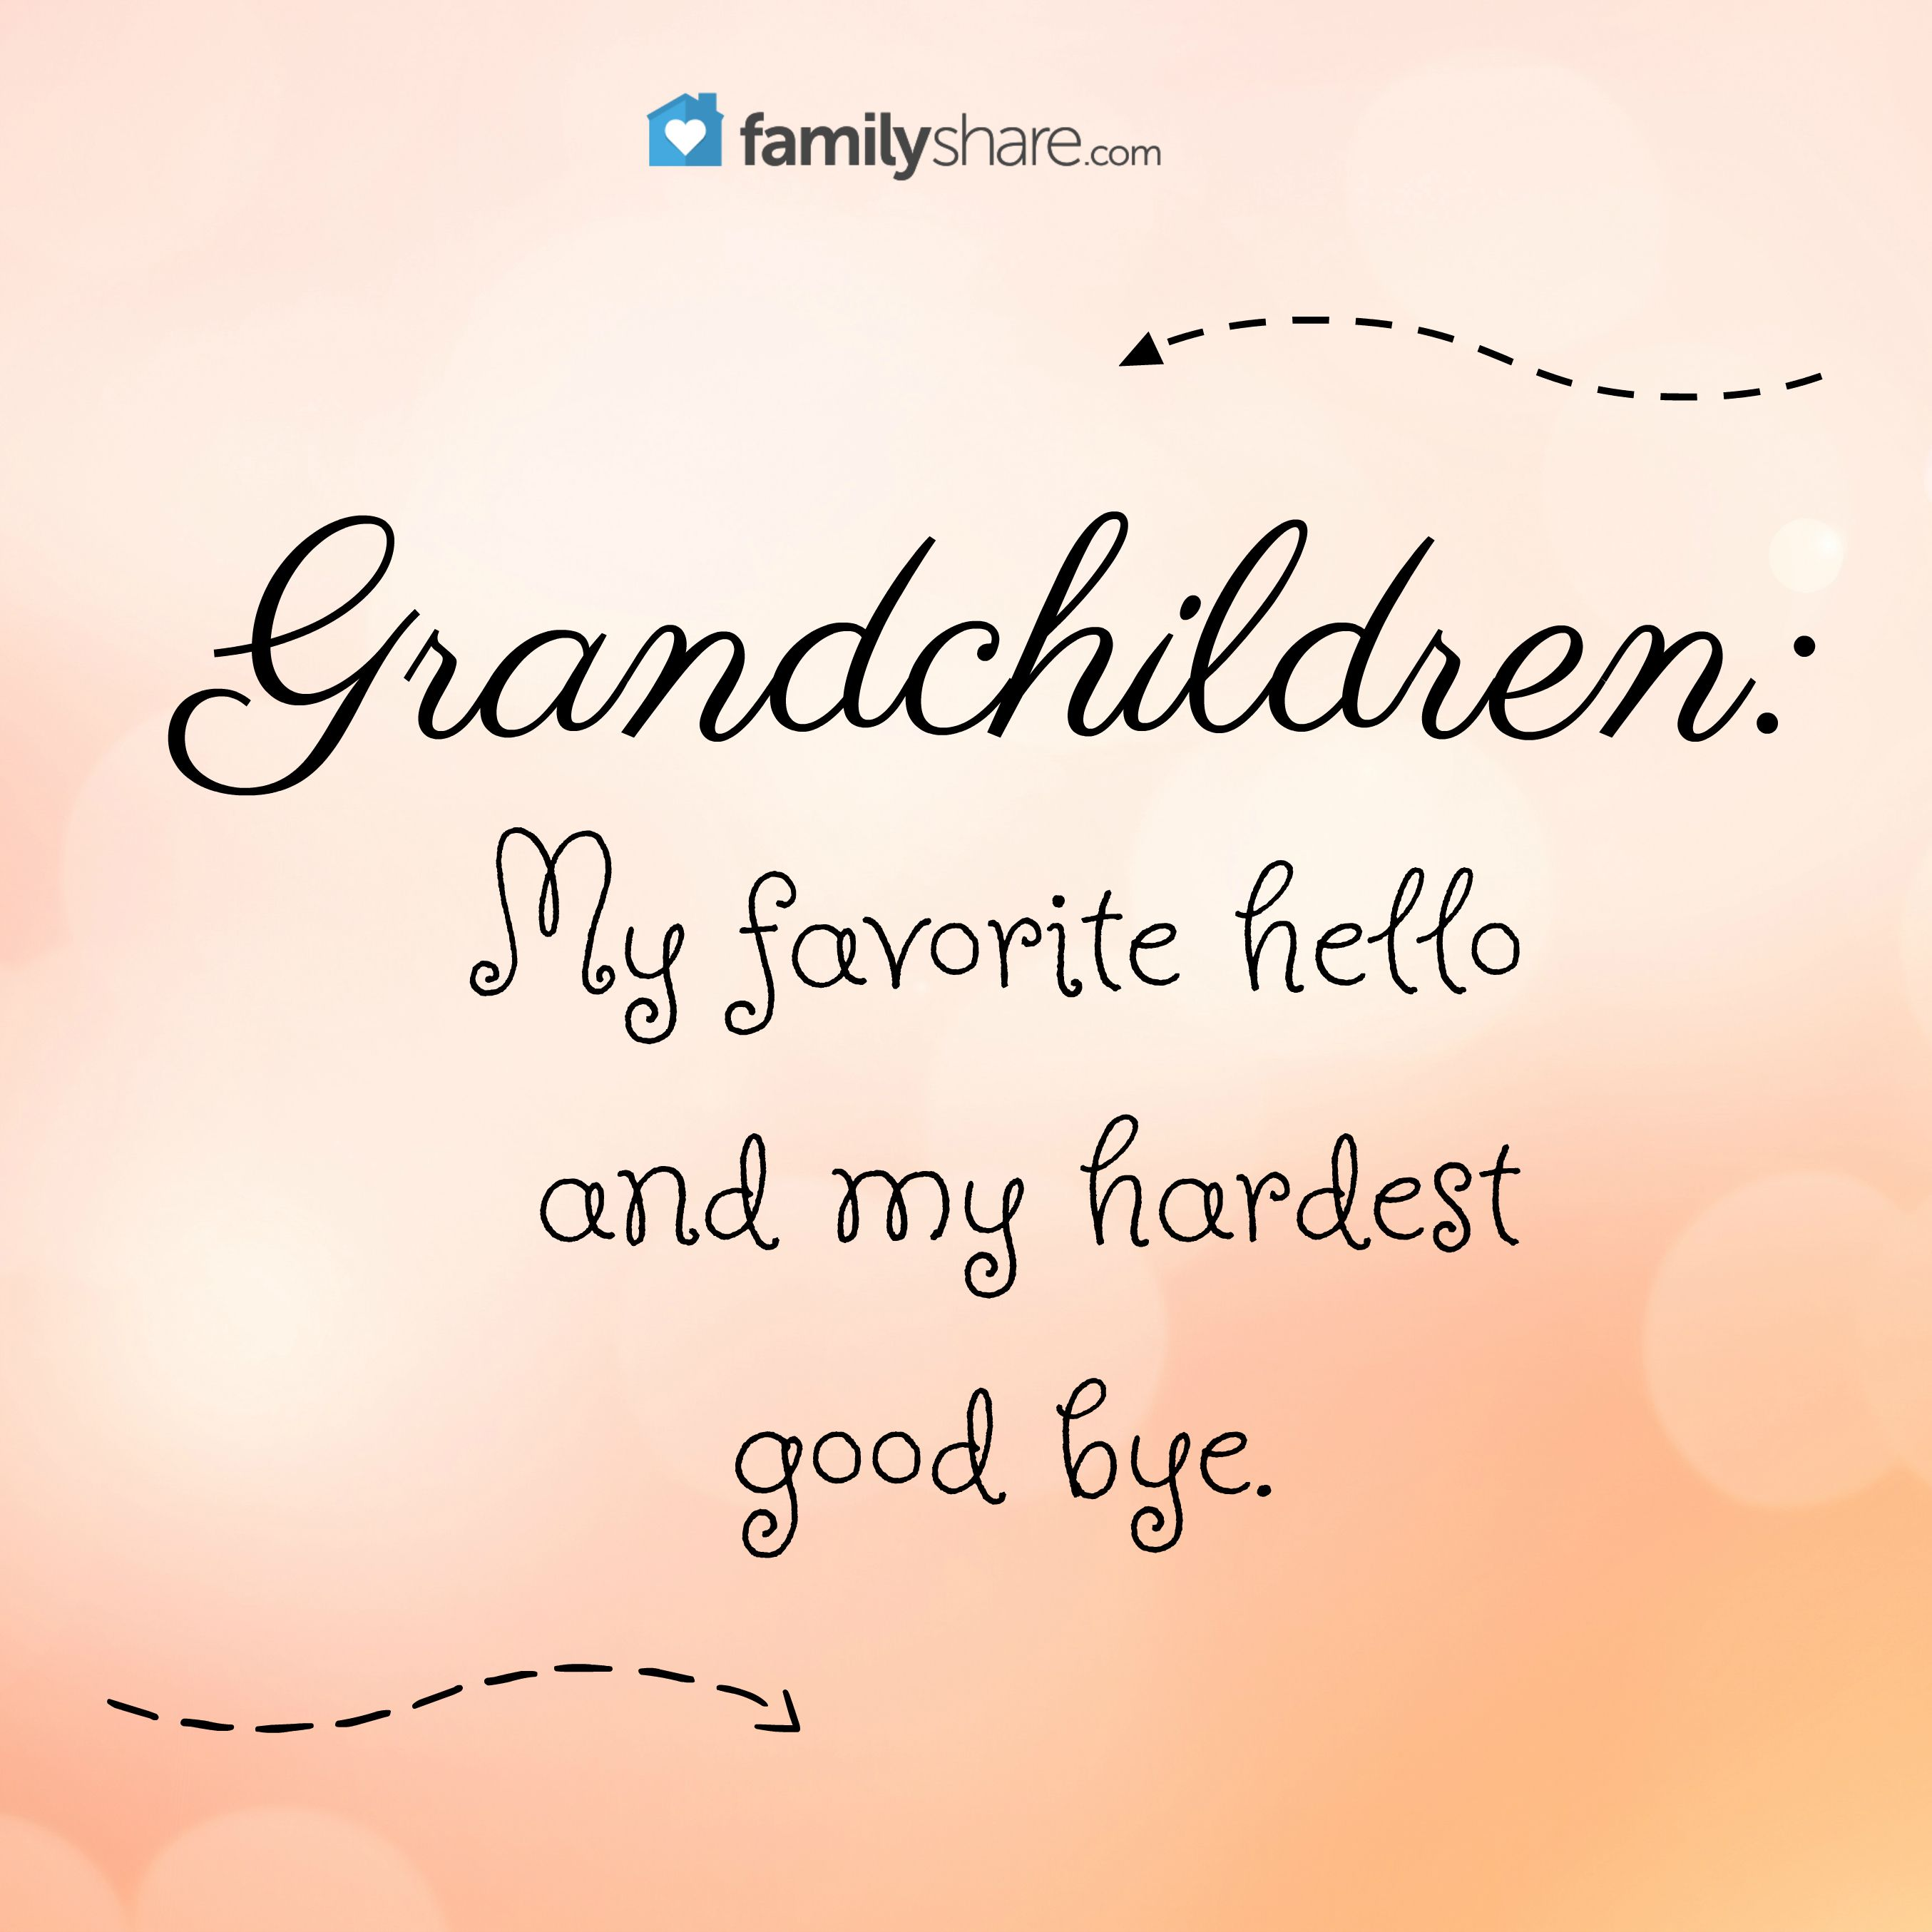 Grandchildren My favorite hello and my hardest good bye